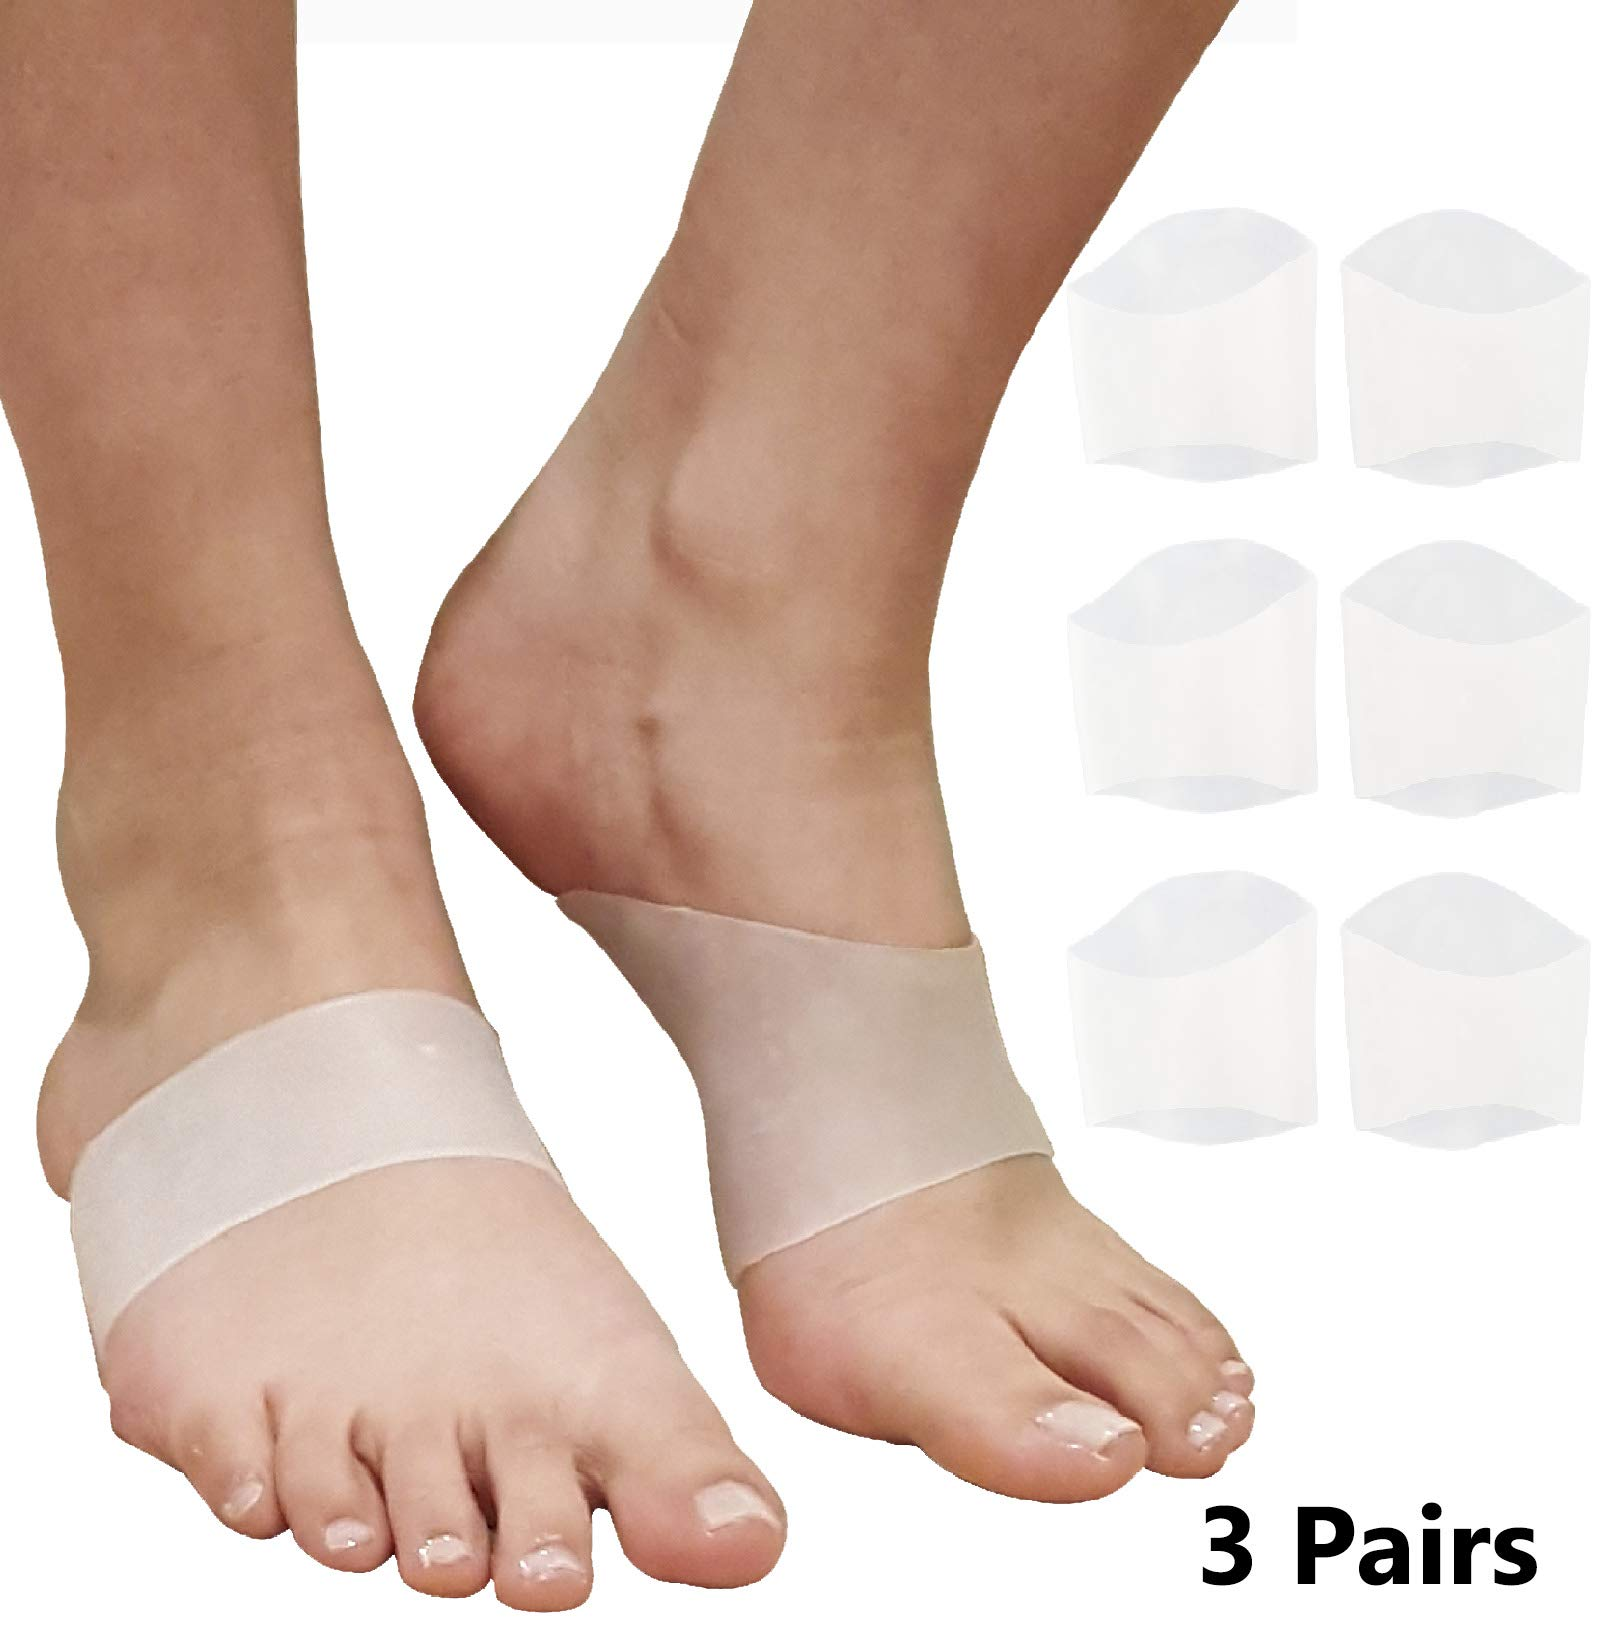 Plantar Fasciitis Arch Support Inserts - Gel Cushion Insoles for Flat Feet, High or Fallen Arches. Reduce Foot & Heel Pain Fast. Comfortable Padded Compression Sleeves Fascia Insert Braces (3 Pairs)